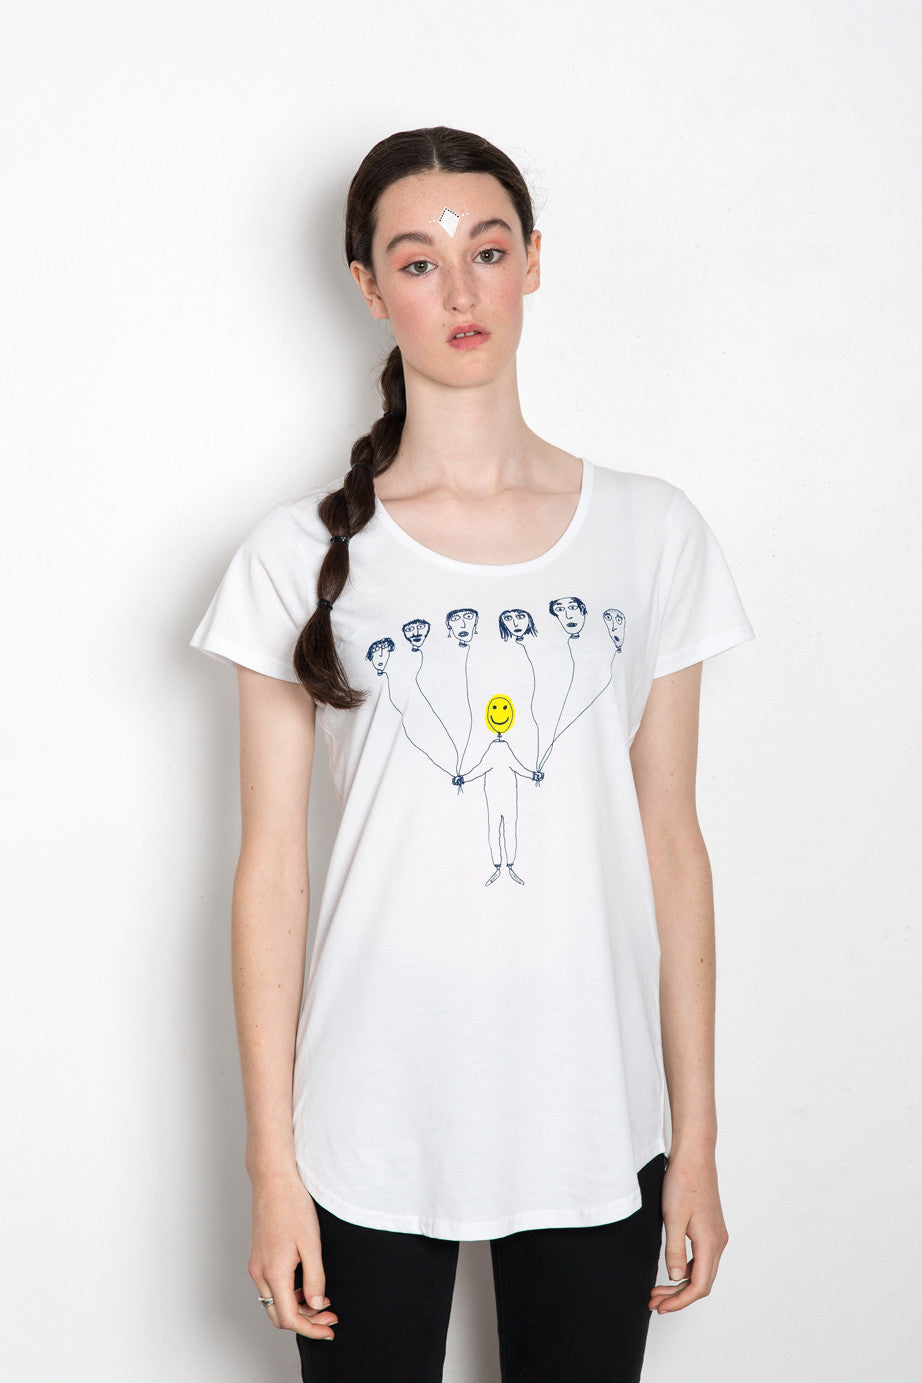 The Balloonman Women's Duchess Tee